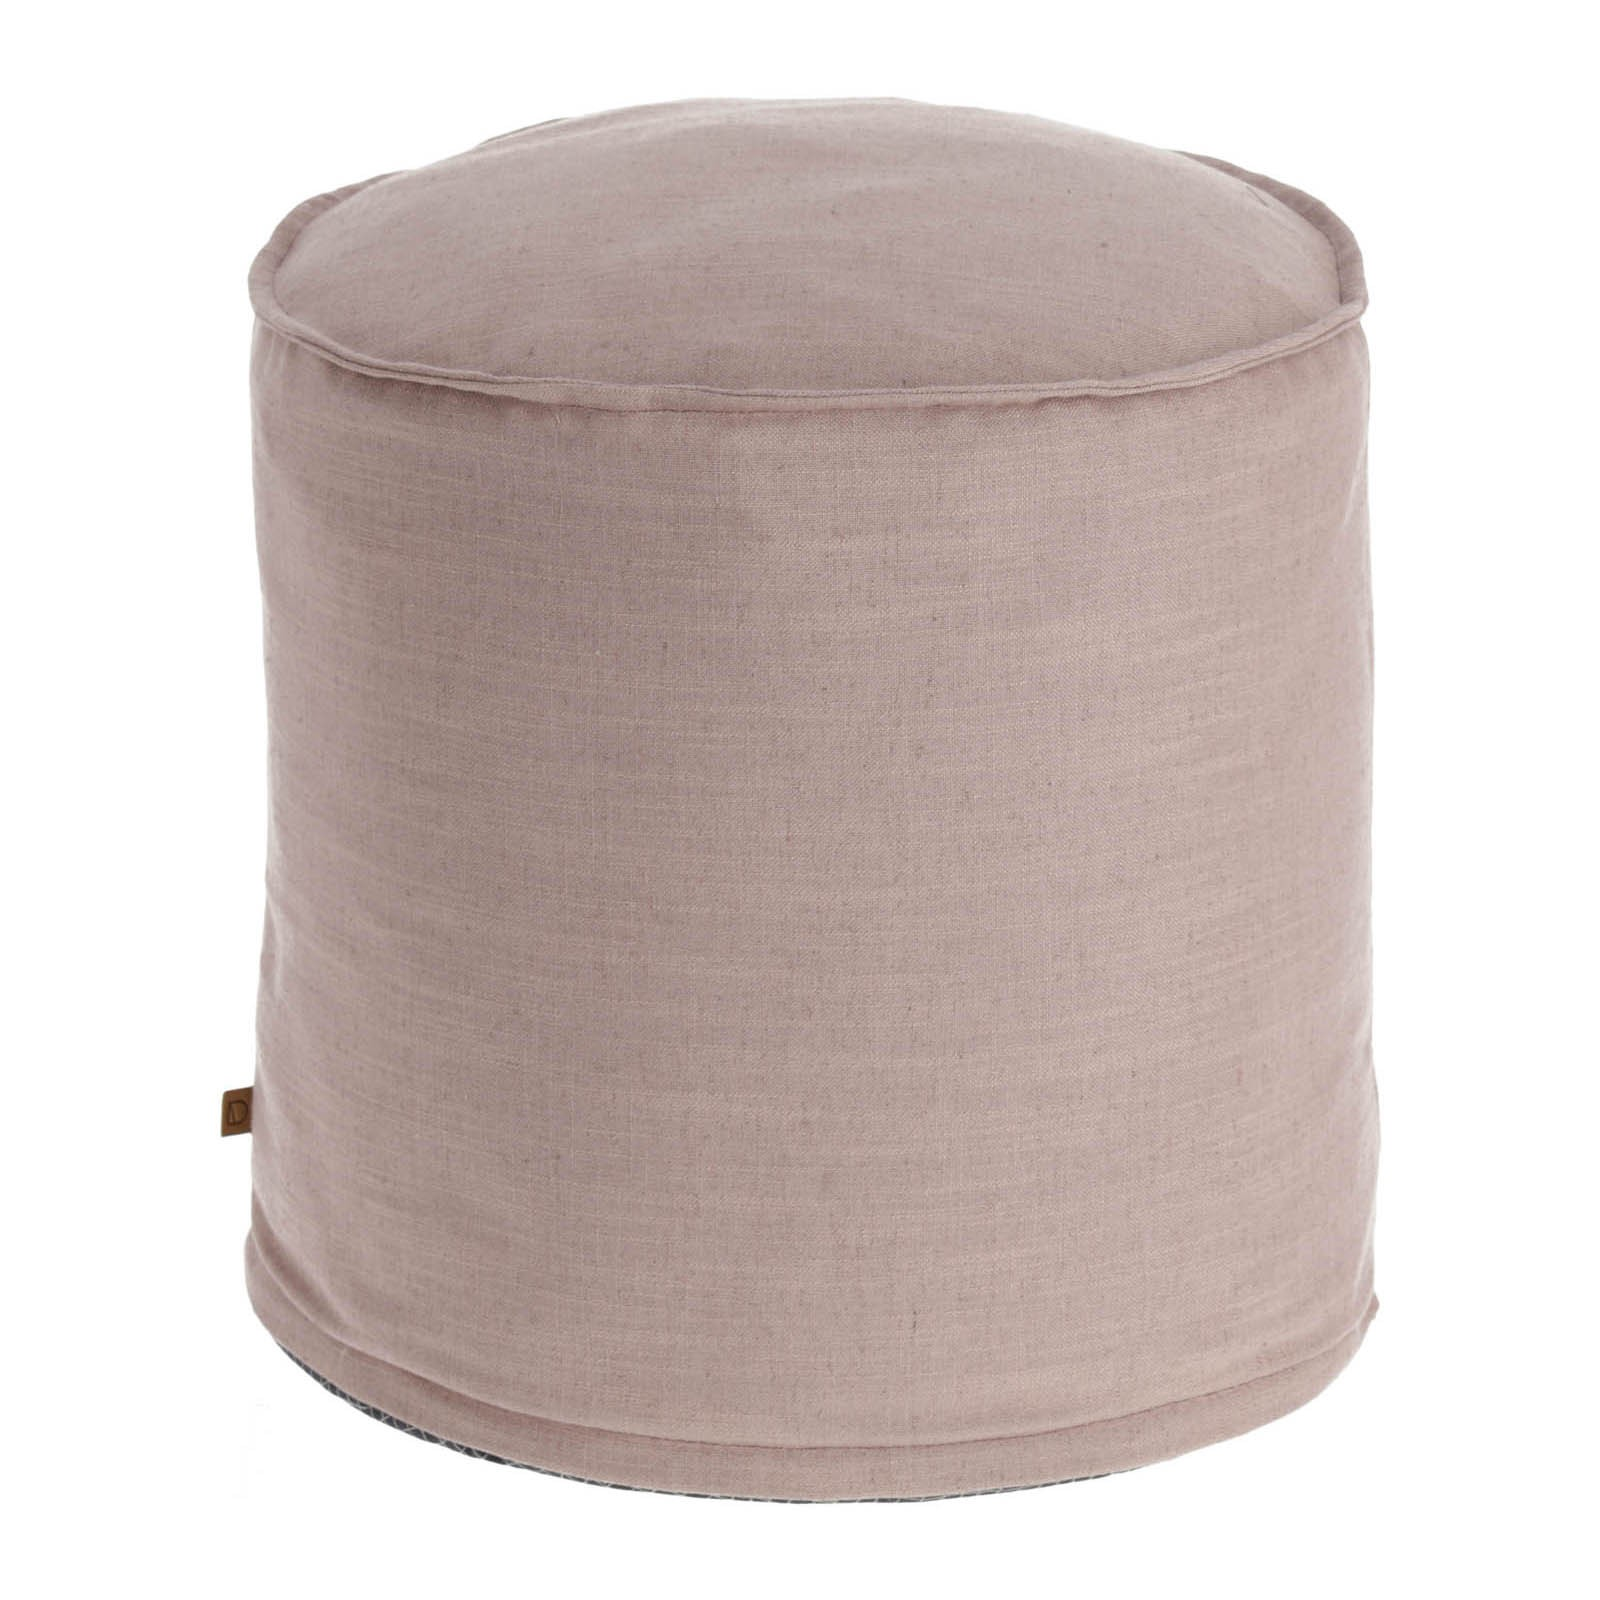 Moana Fabric Round Ottoman Stool, Blush